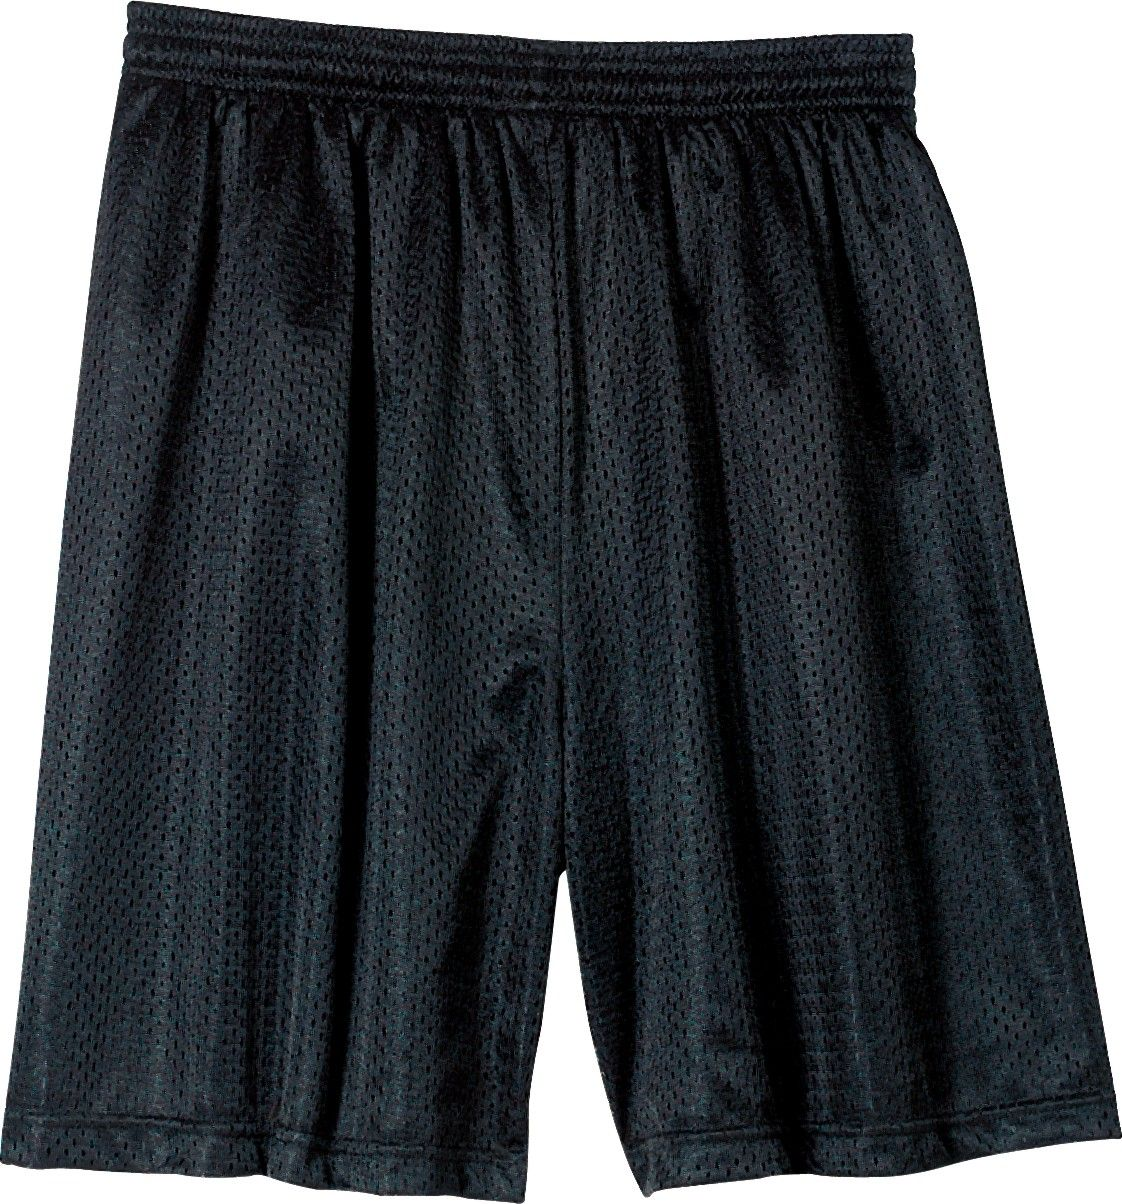 Find your adidas Men - Black - Shorts at efwaidi.ga All styles and colors available in the official adidas online store.